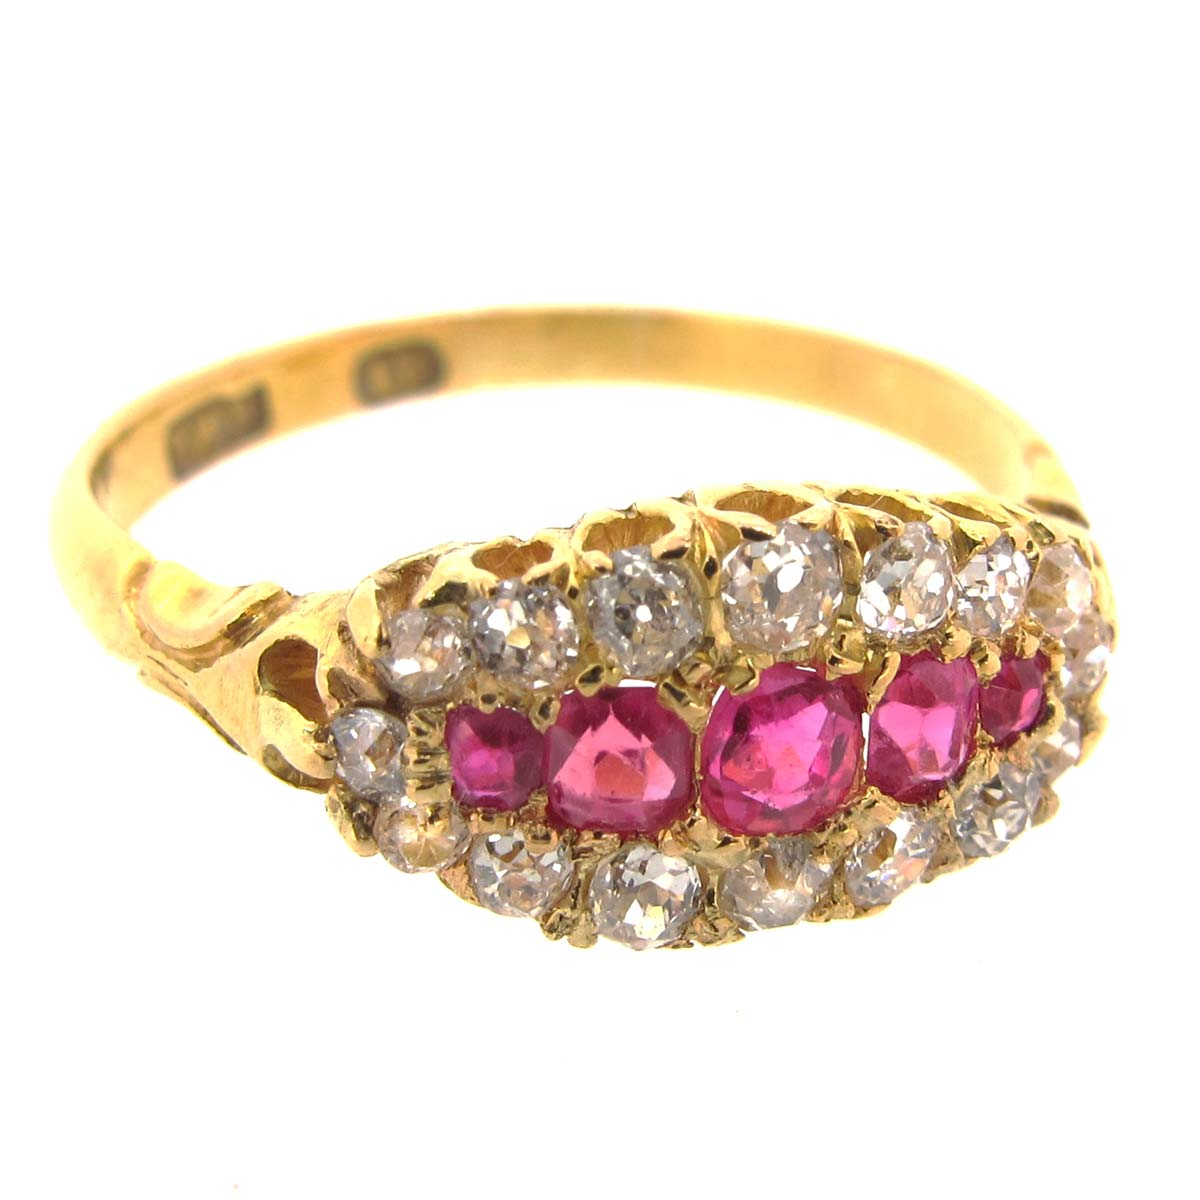 Antique Gold, Ruby & Diamond ring